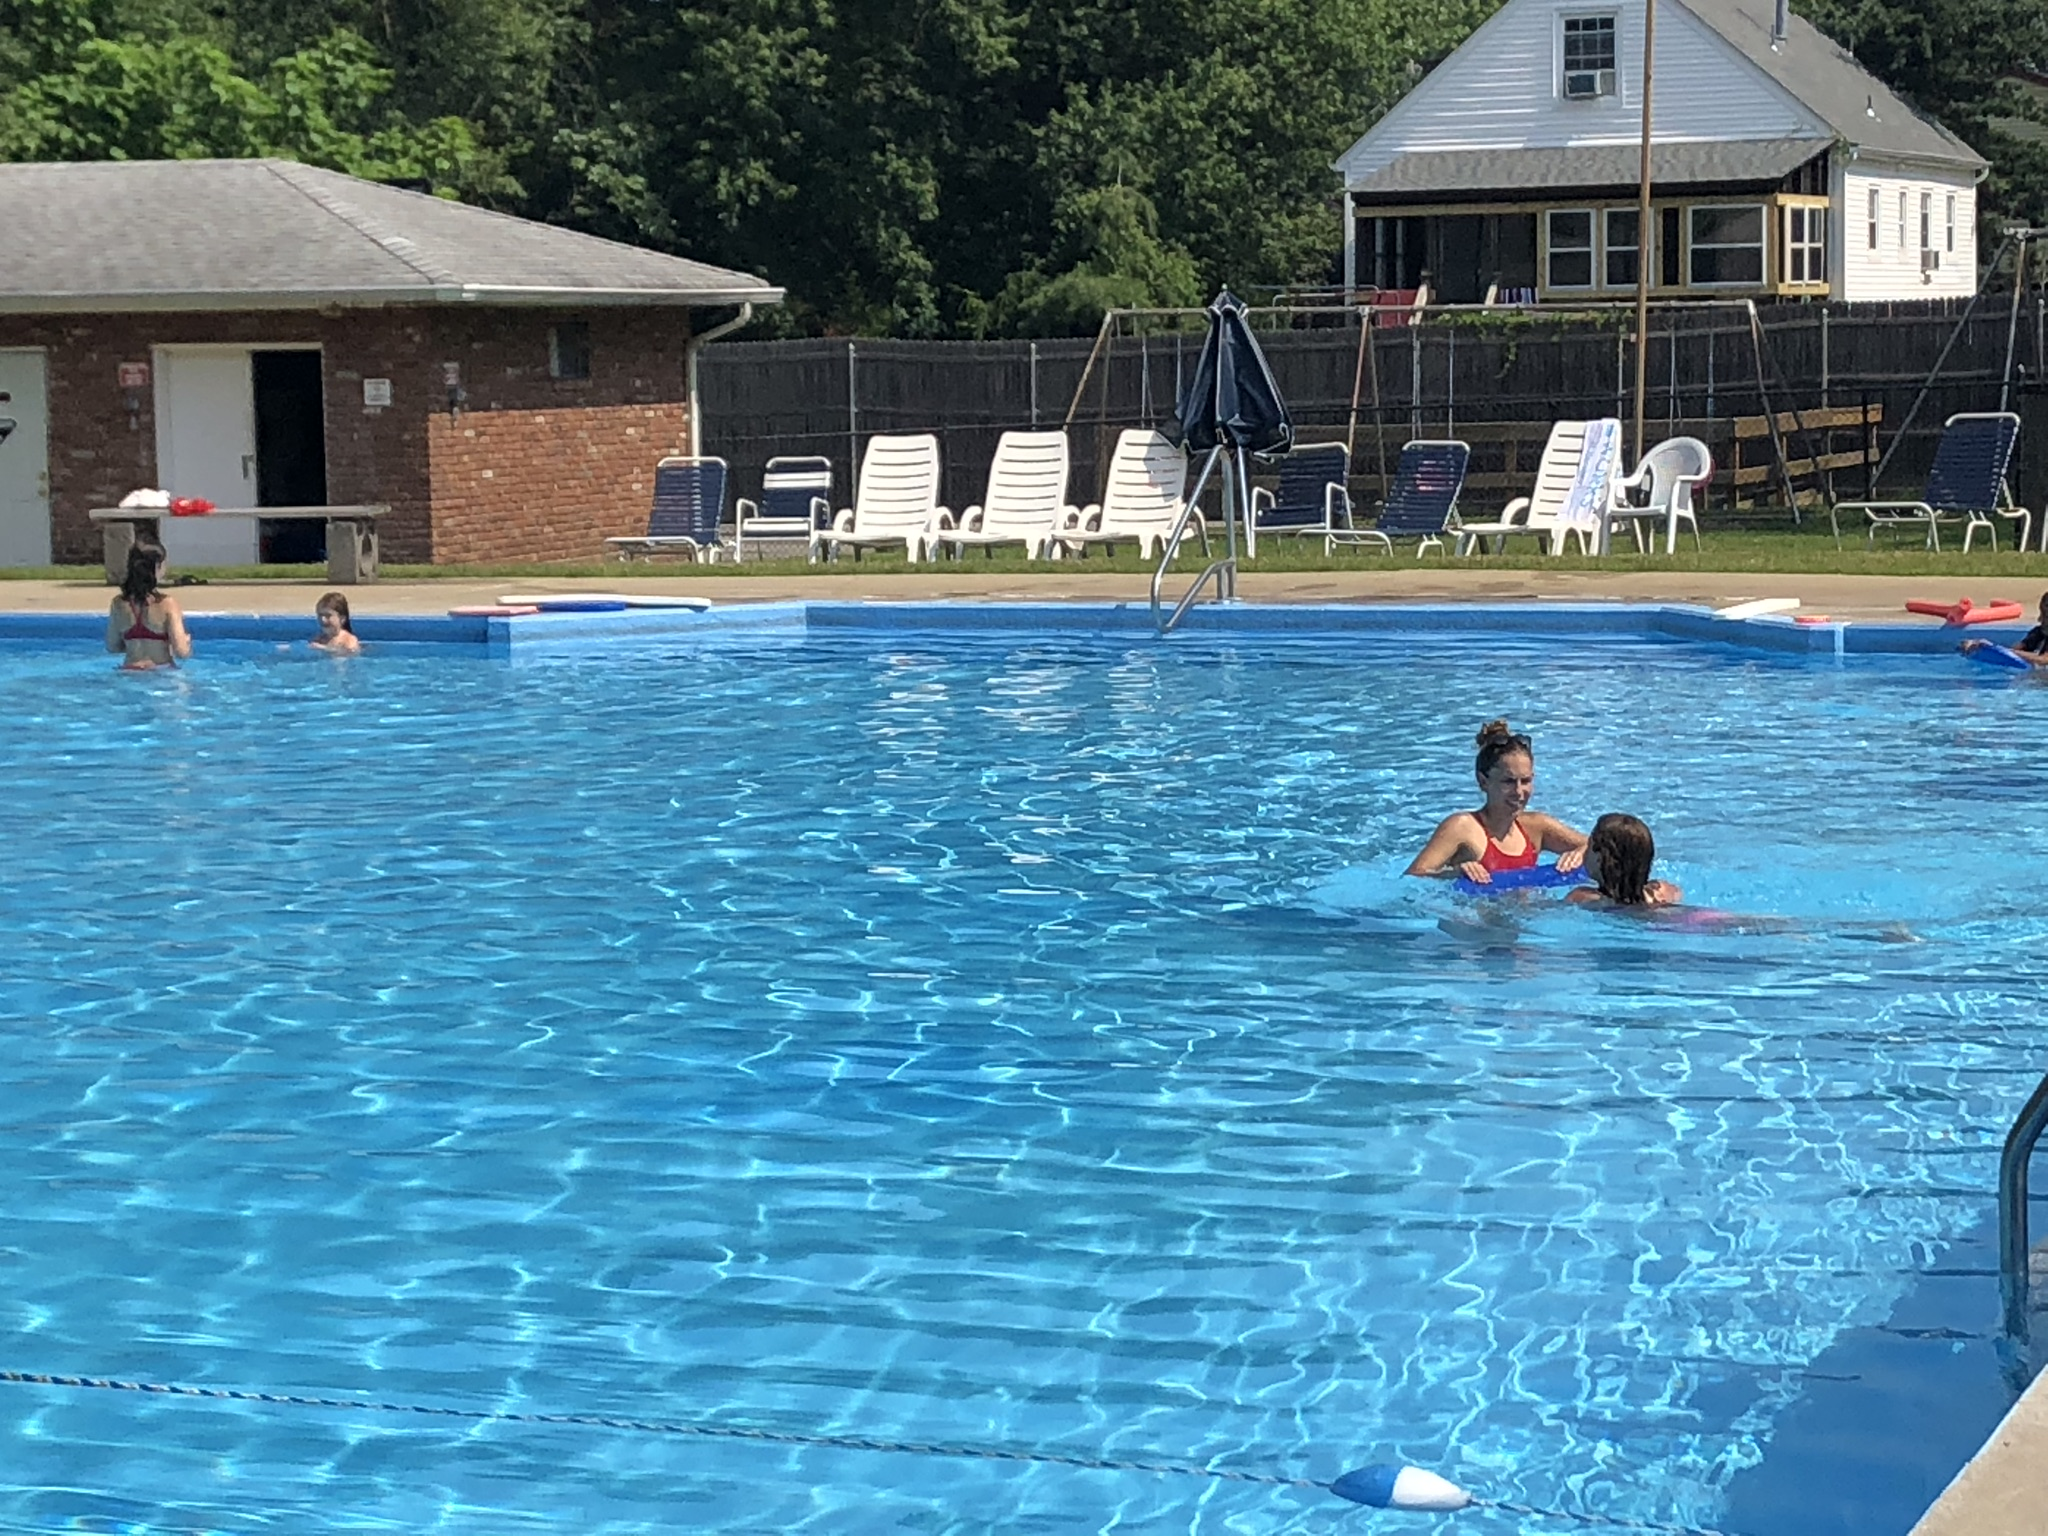 SWIM LESSONS - Find out about our Learn to Swim program for swimmers of all ages.